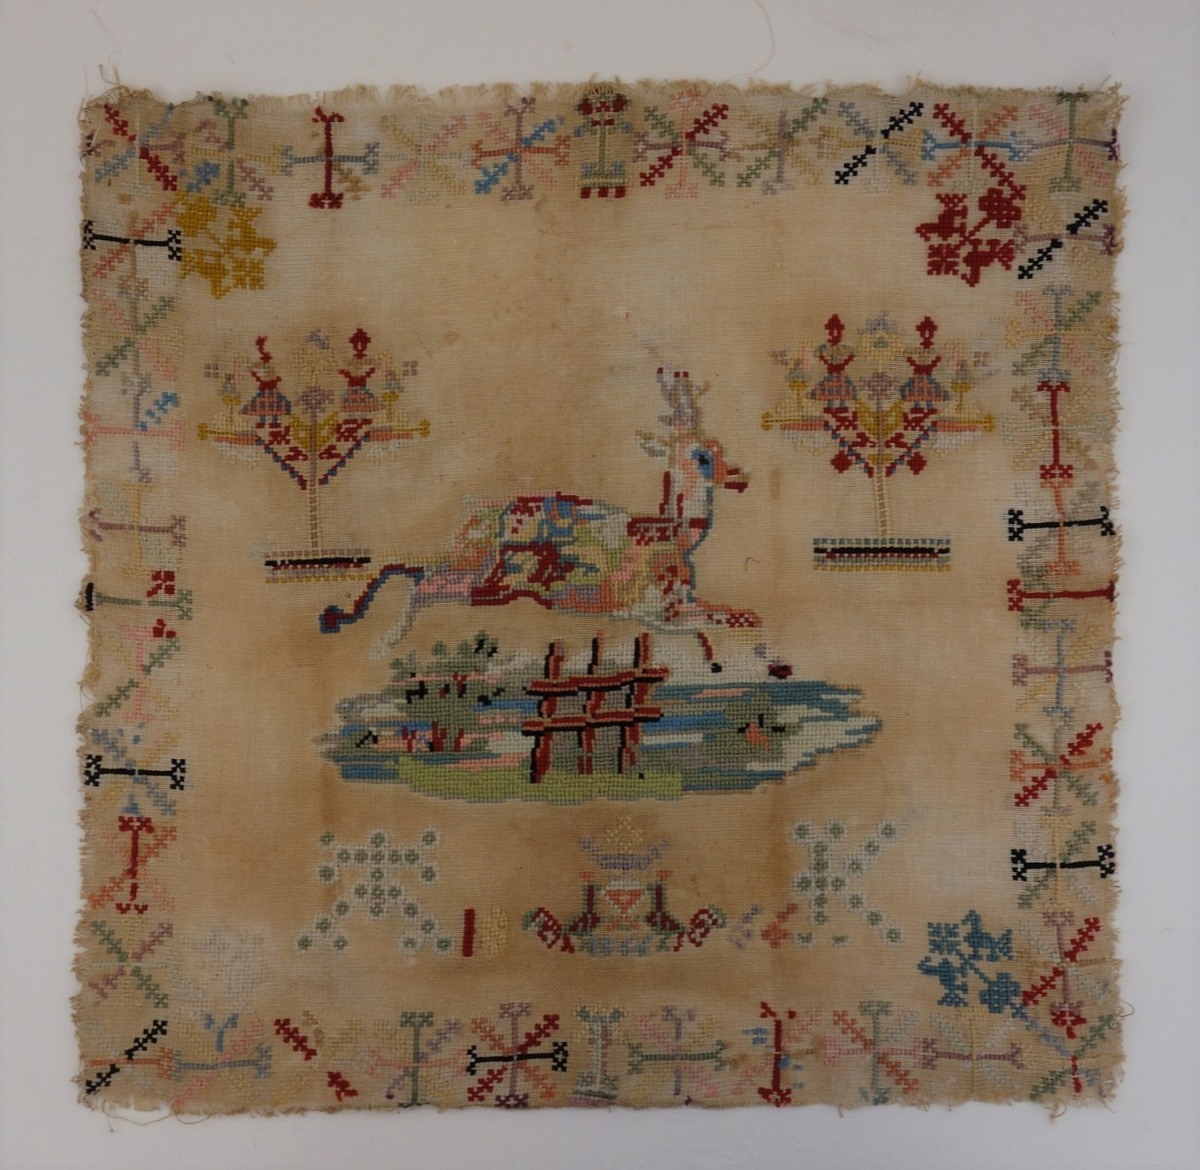 Embroidered Berlin work sampler, wool on linen, The Netherlands, 19th century.